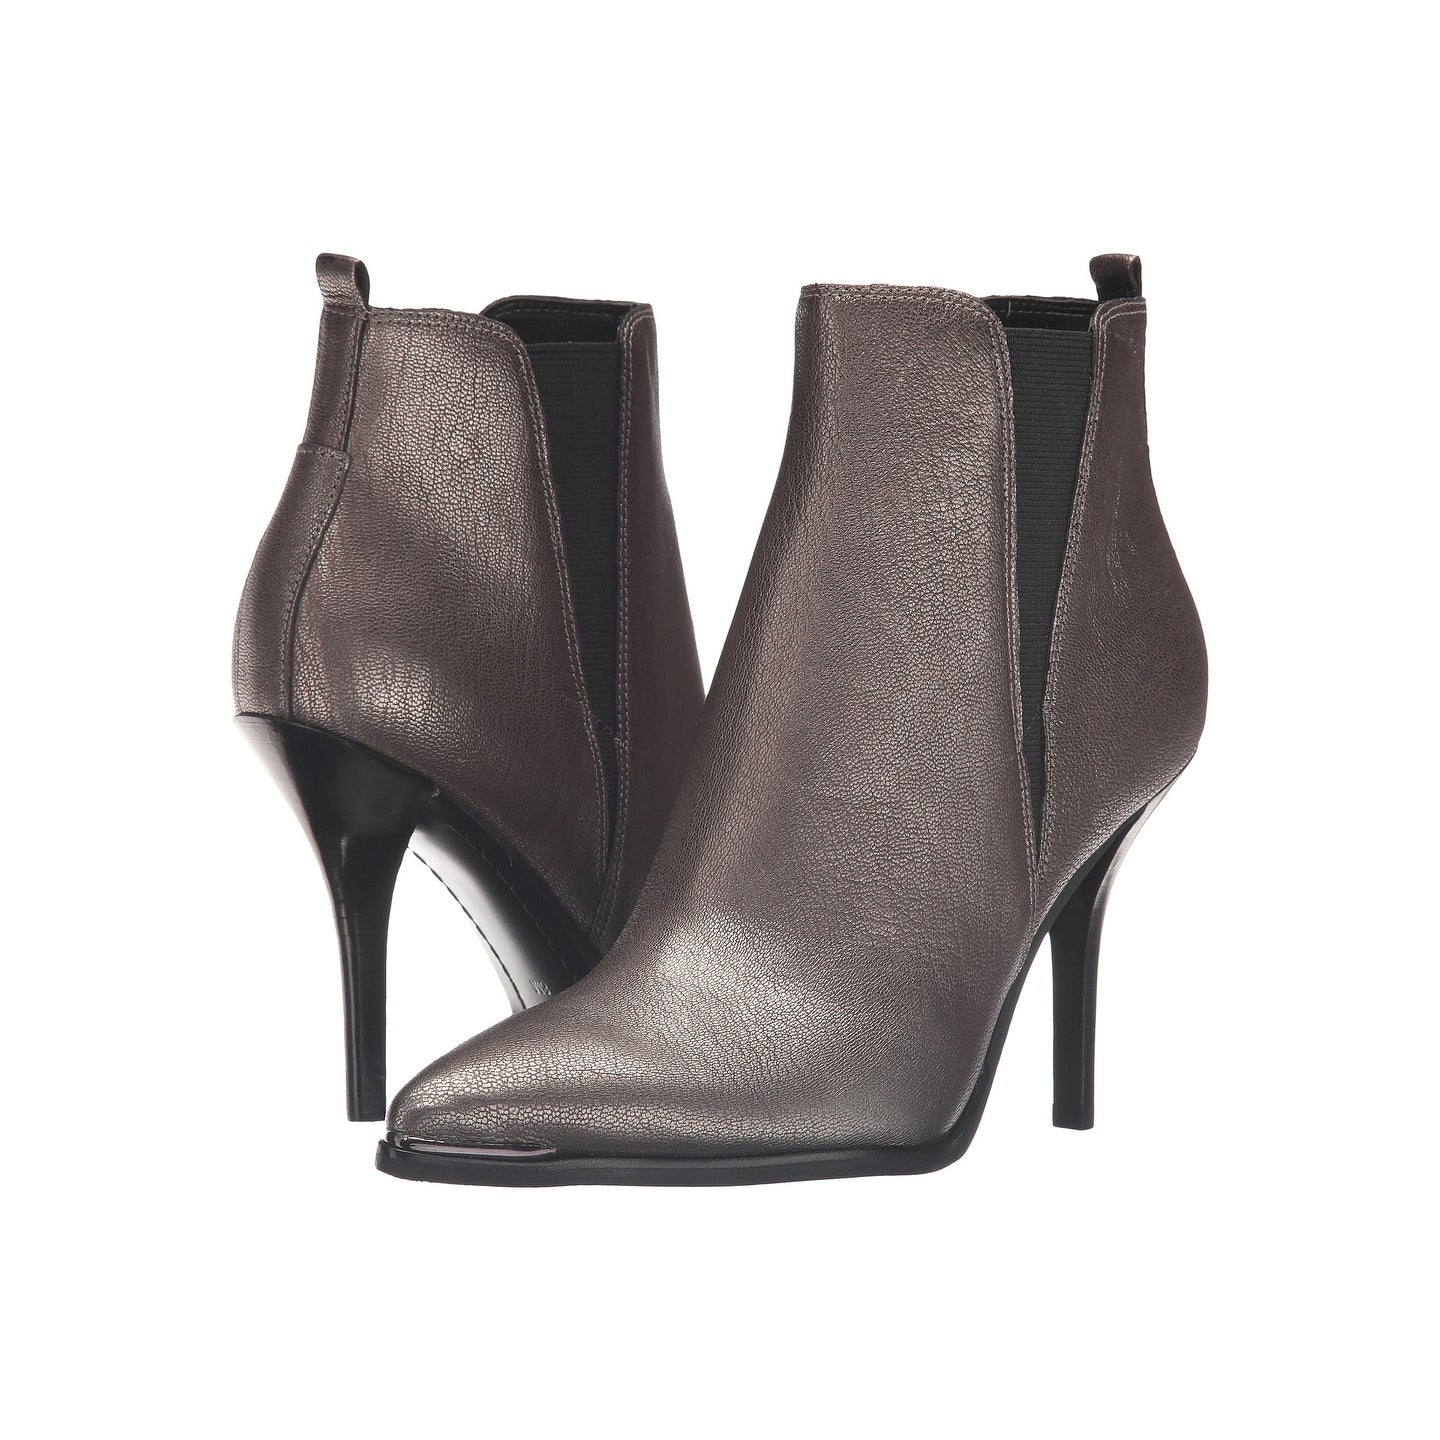 e5c40344d35a Shop Marc Fisher LTD Women's Mlvilma Ankle Bootie - Free Shipping On Orders  Over $45 - Overstock - 14524392